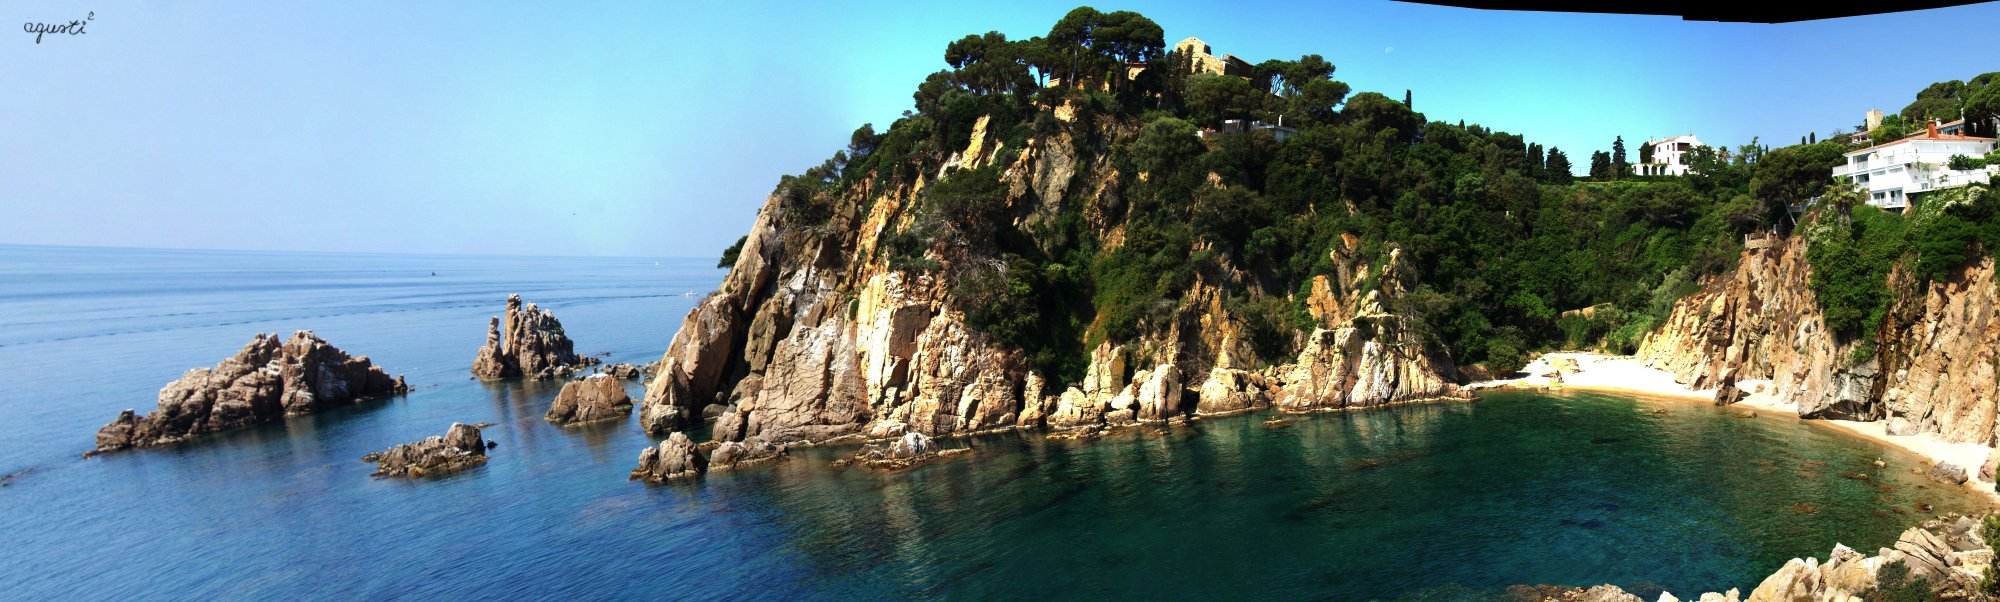 Blanes_01 (06-2015)_01